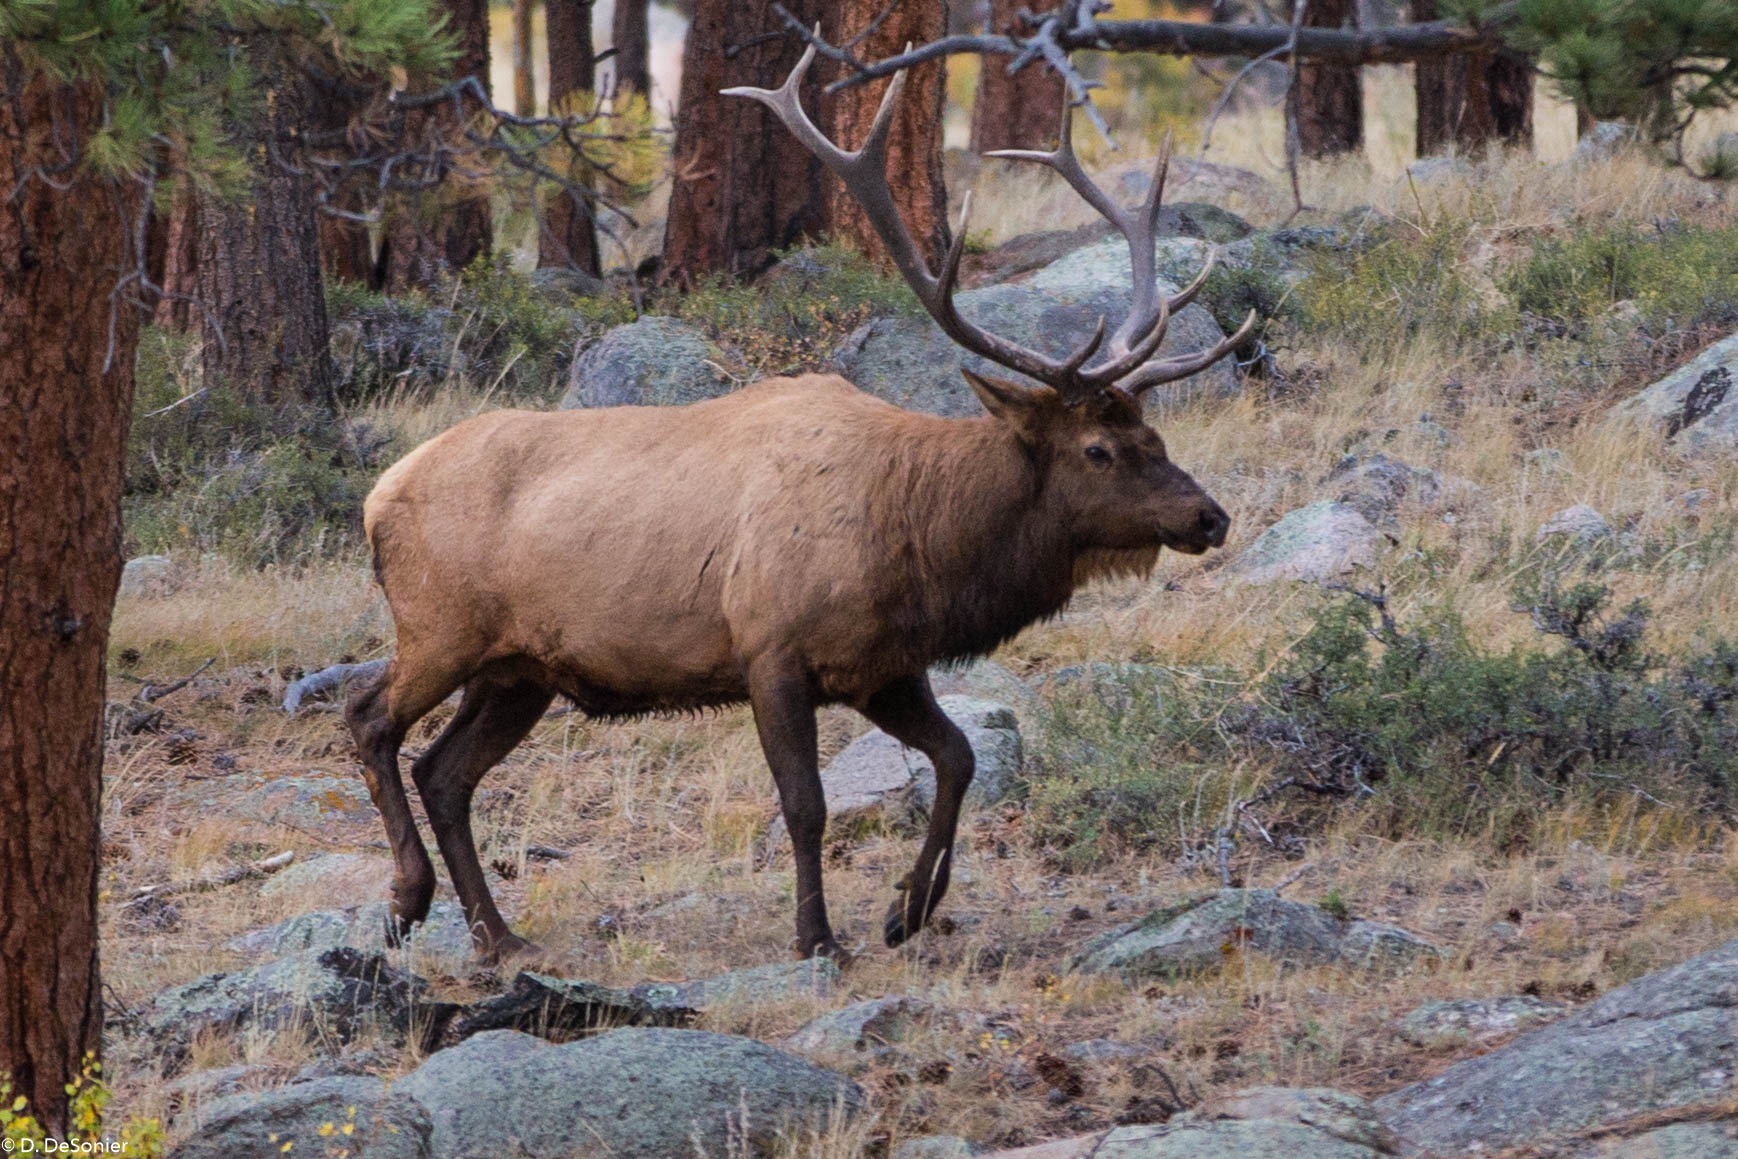 In Rocky Mtn Natl Park; got to hear these guys bugling.